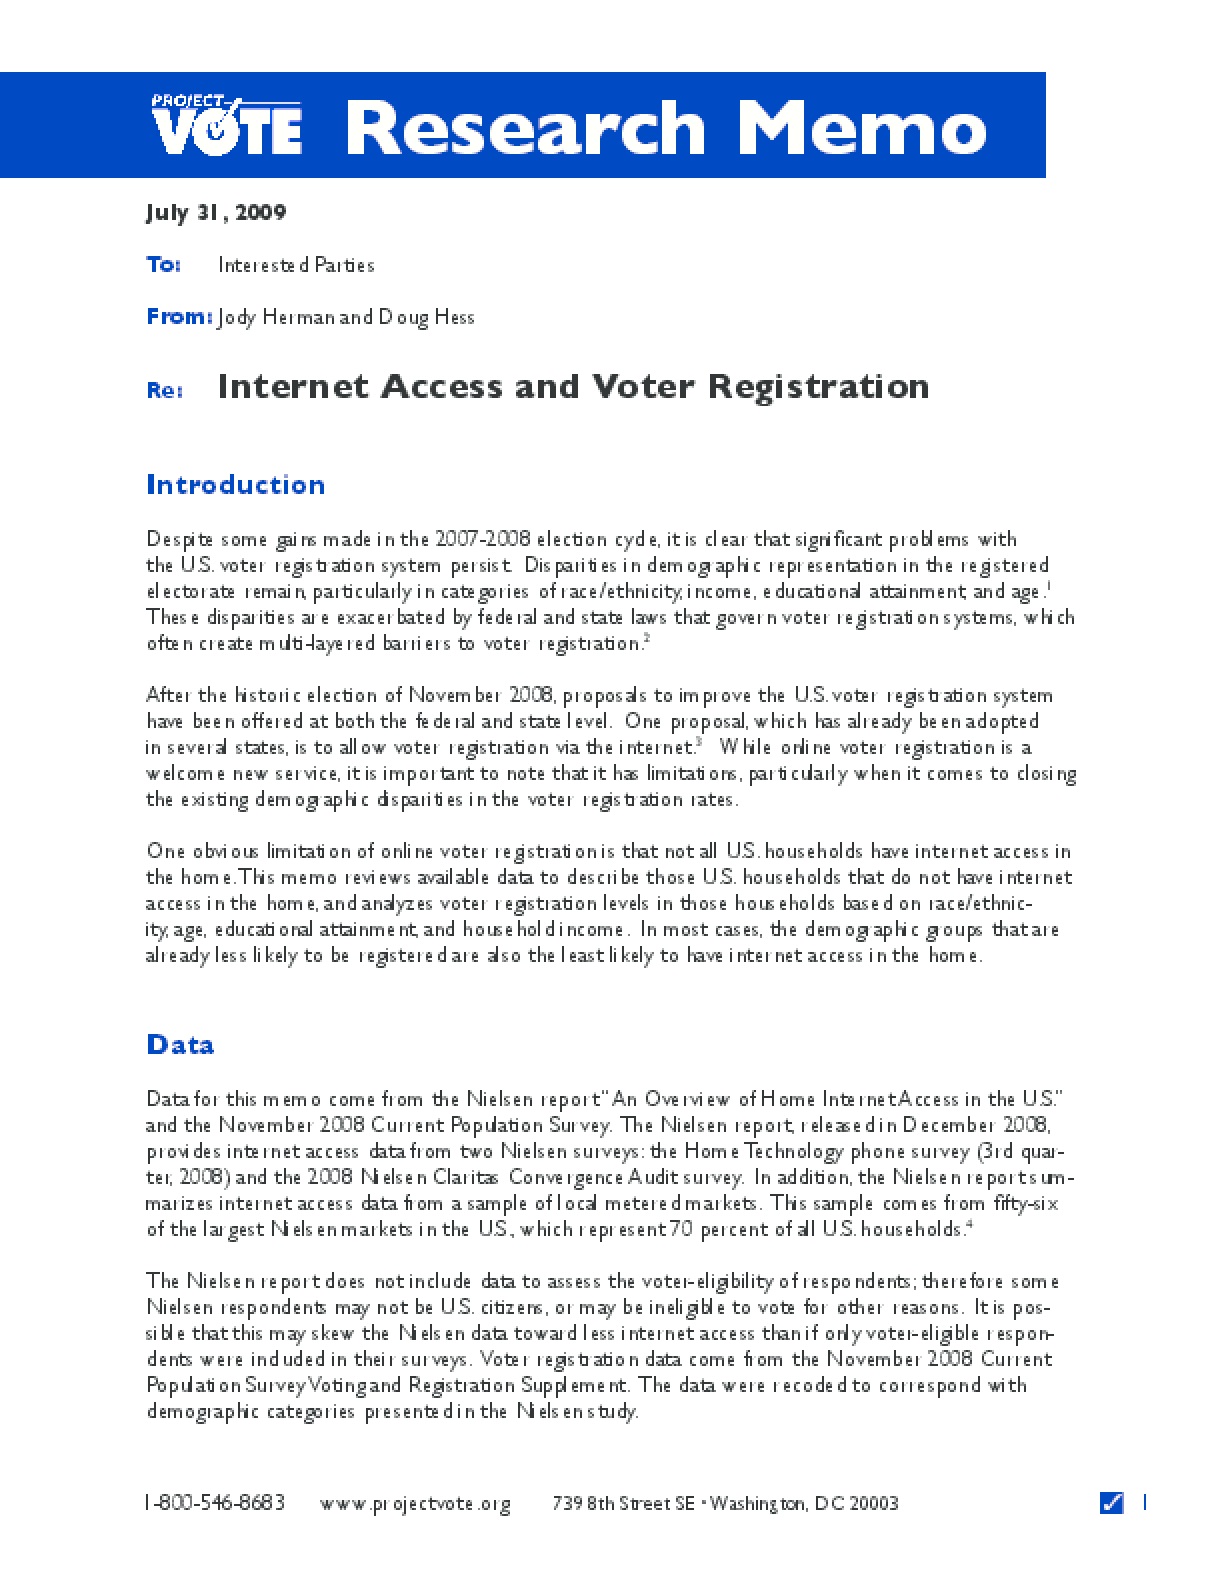 Internet Access and Voter Registration